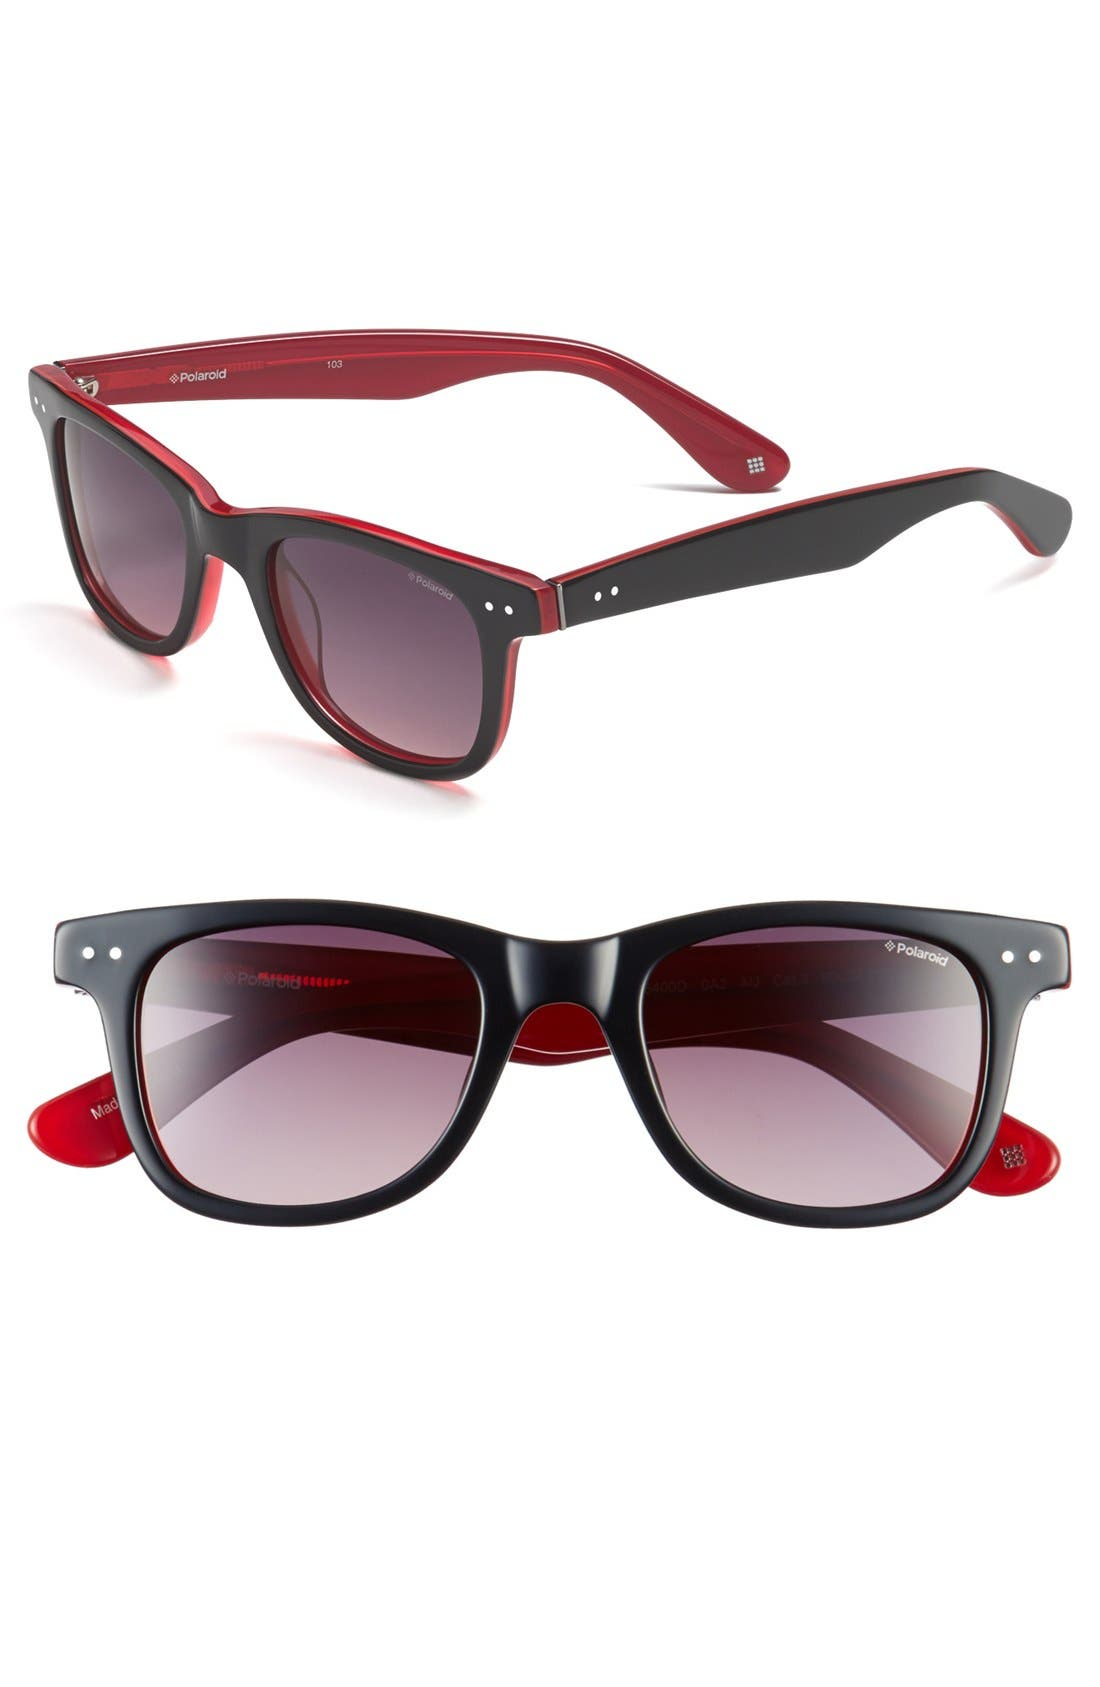 Main Image - Polaroid Eyewear 50mm Retro Polarized Sunglasses